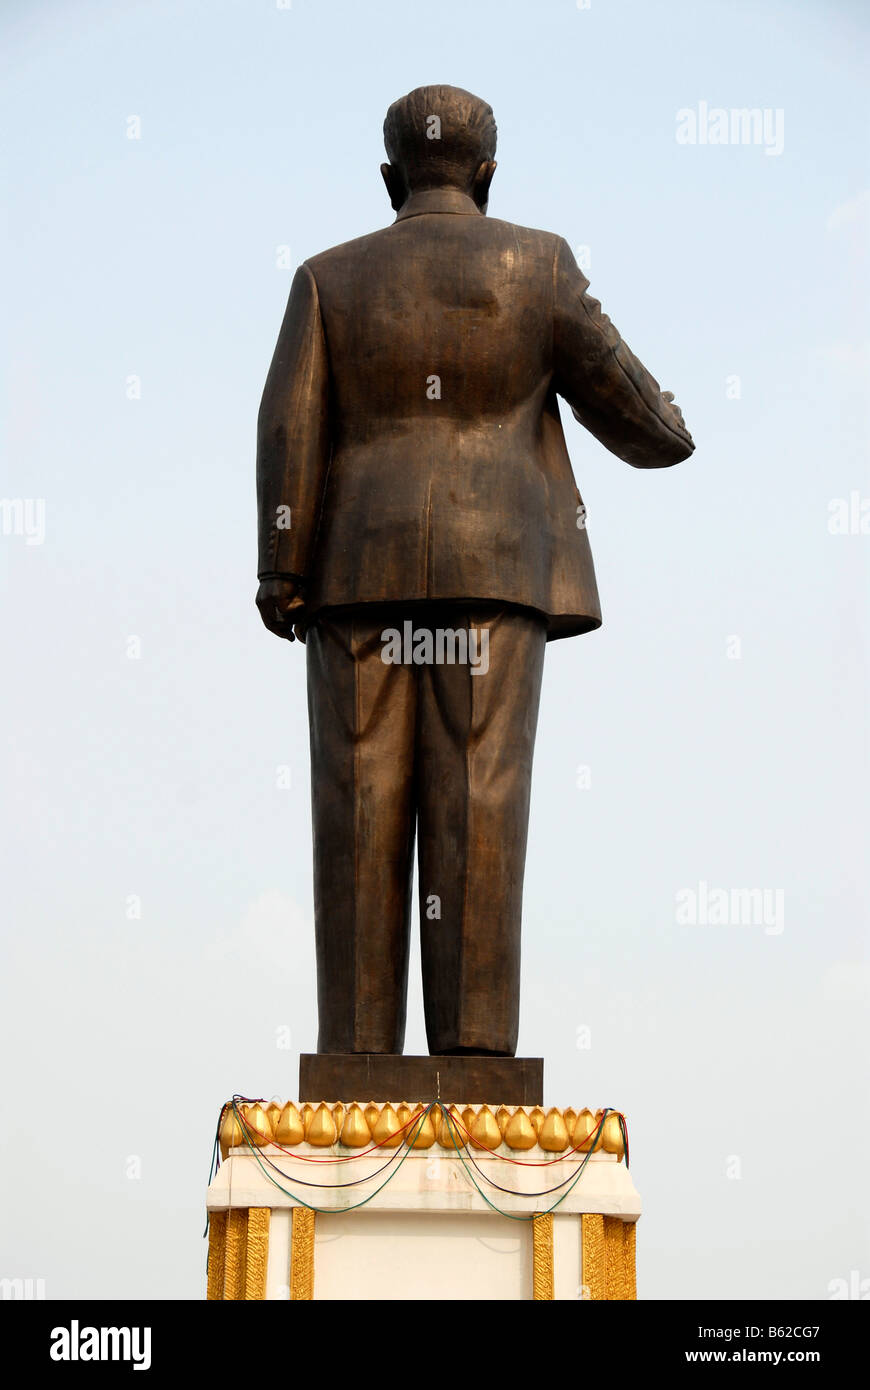 Communist statue of the leader of the revolutionary party and former president Kaysone, seen from behind, Kaysone - Stock Image